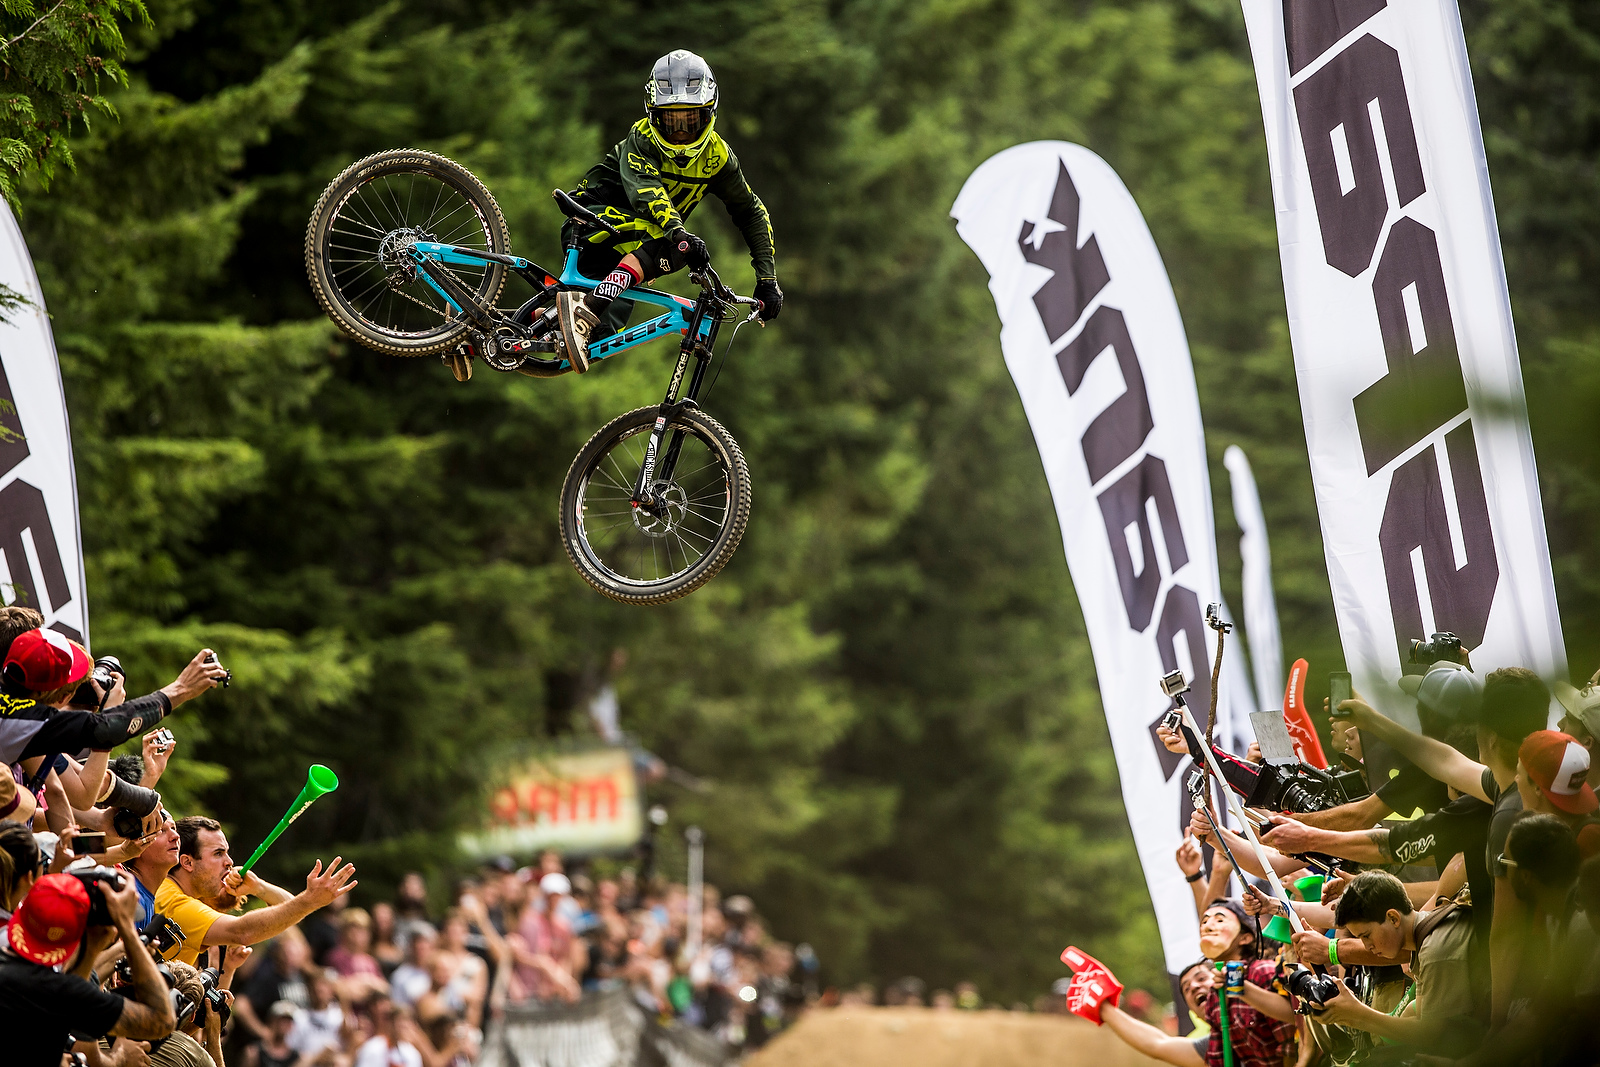 Cam 4 U >> 61 of the Sickest Whip Off World Champs Photos - 61 Whip Off World Champs Photos - Mountain ...